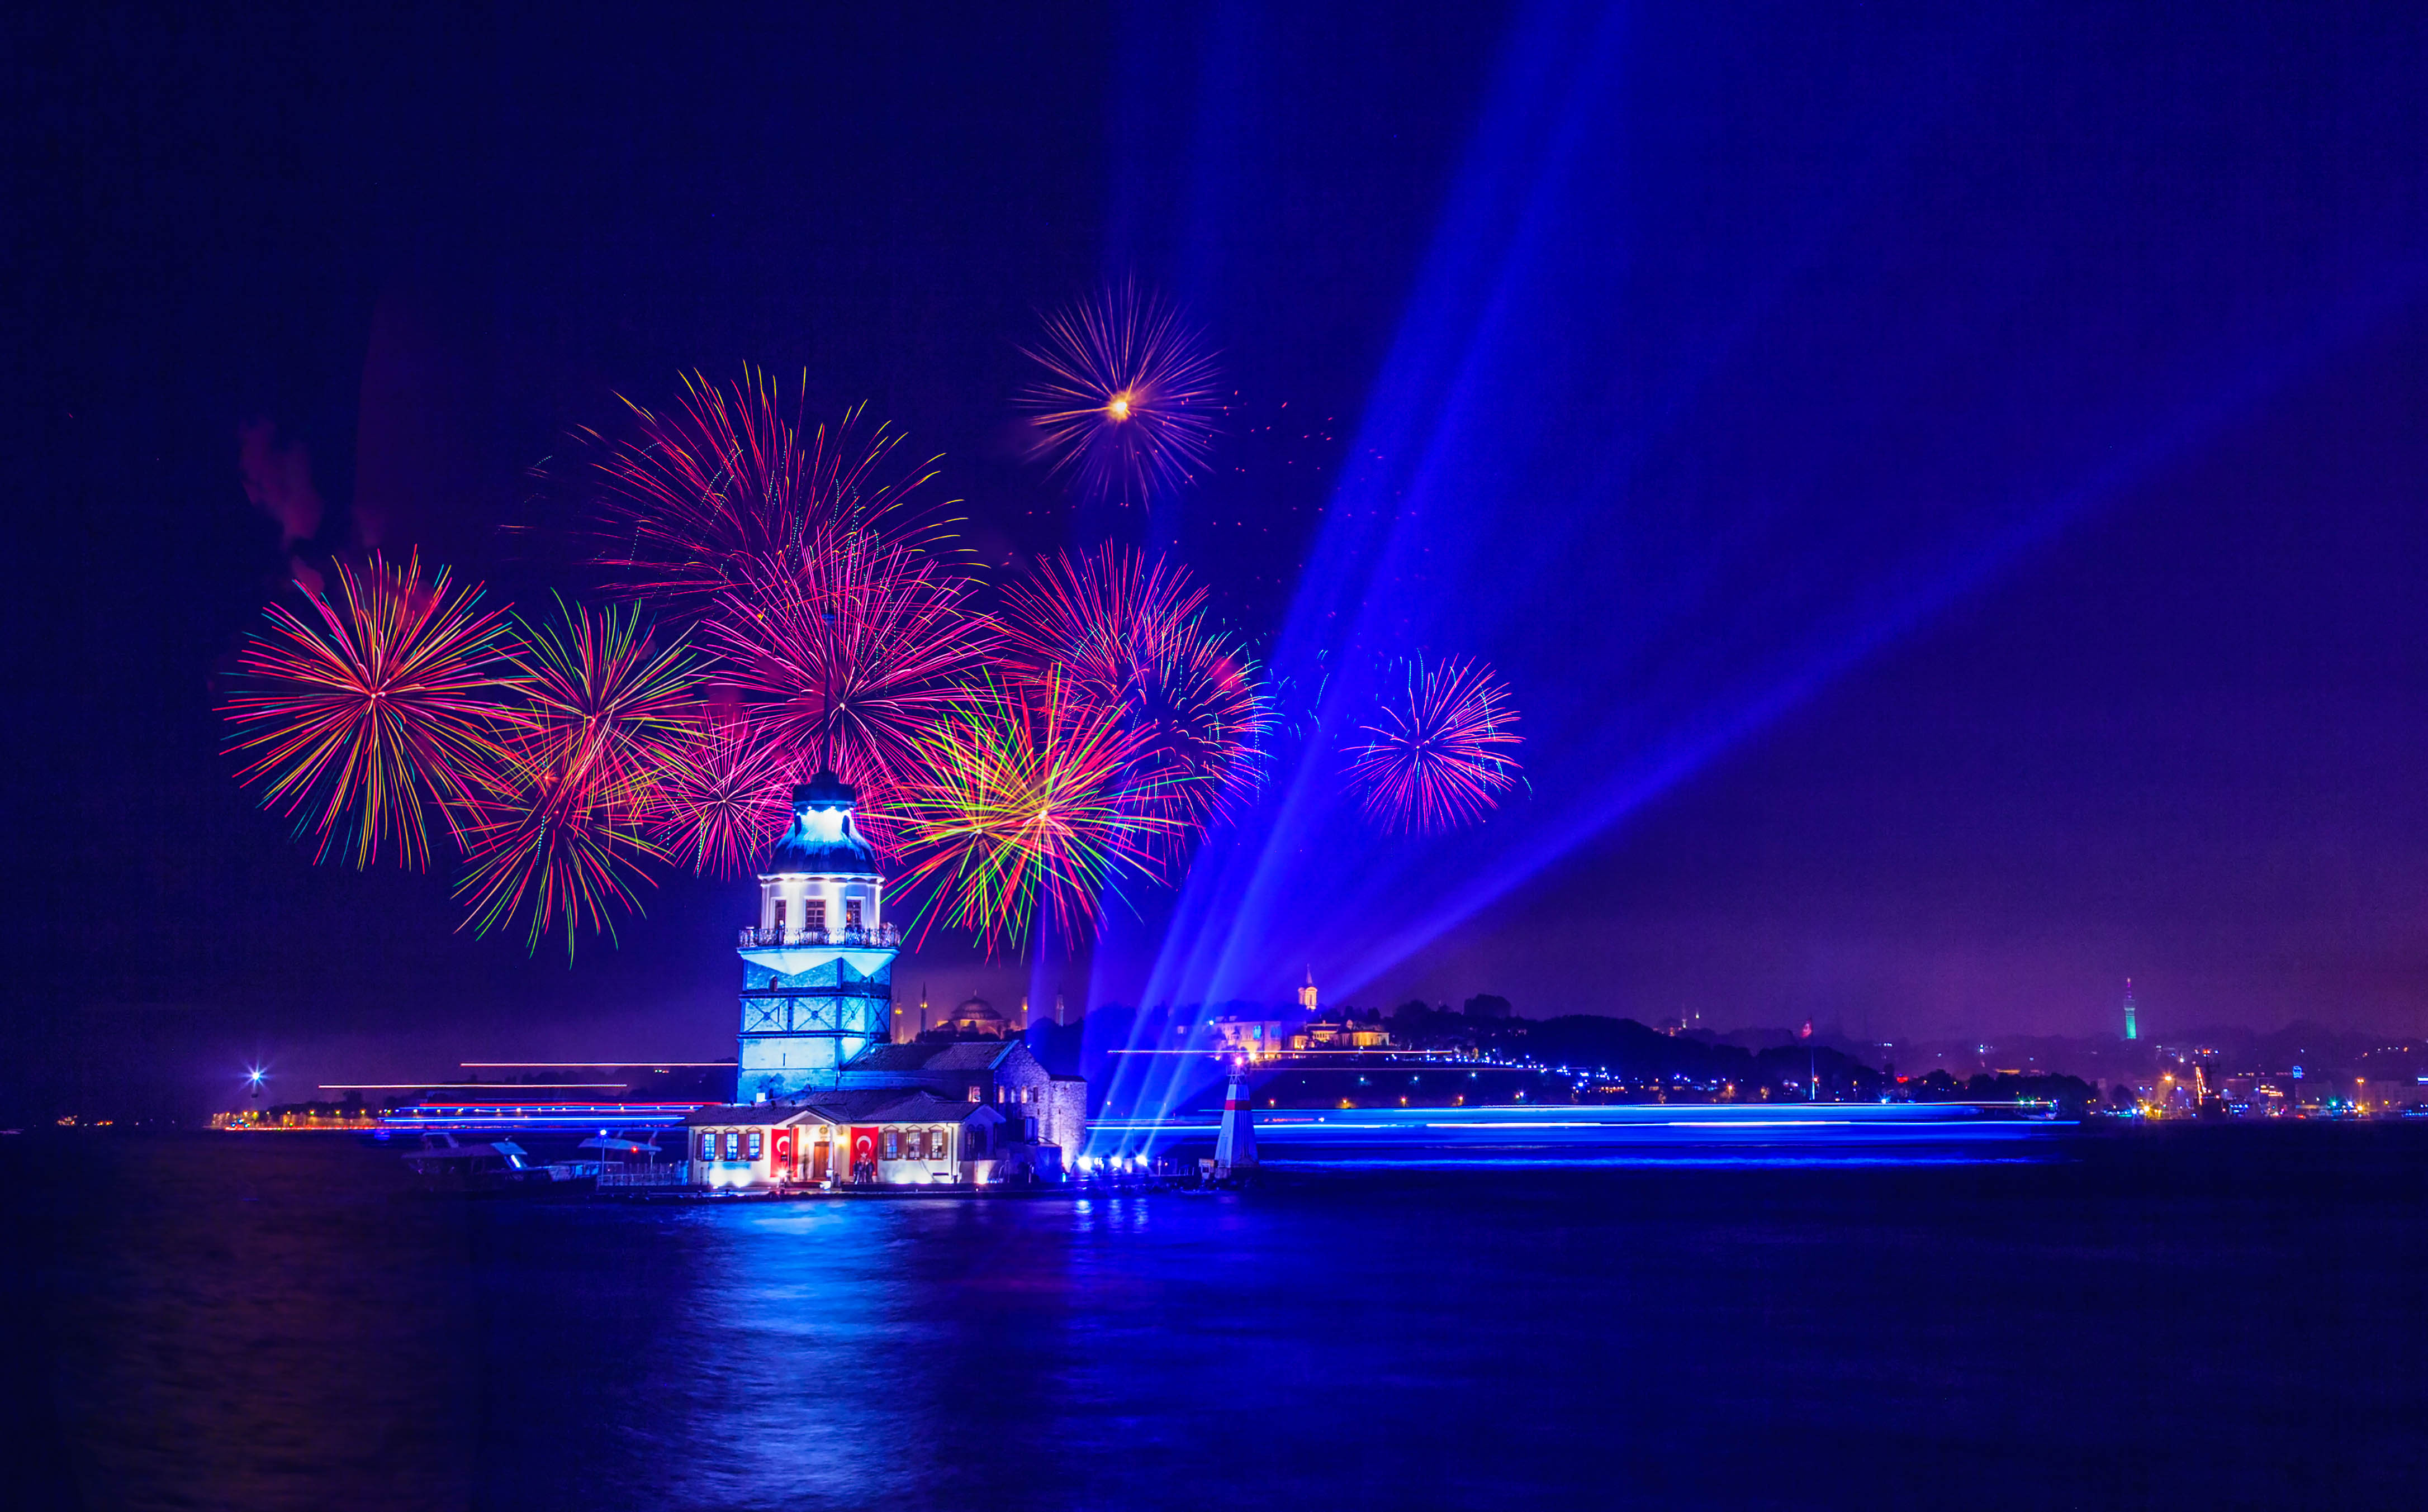 Indipendent day celebration with colorful firework display and laser light show over Bosphorus, Istanbul.